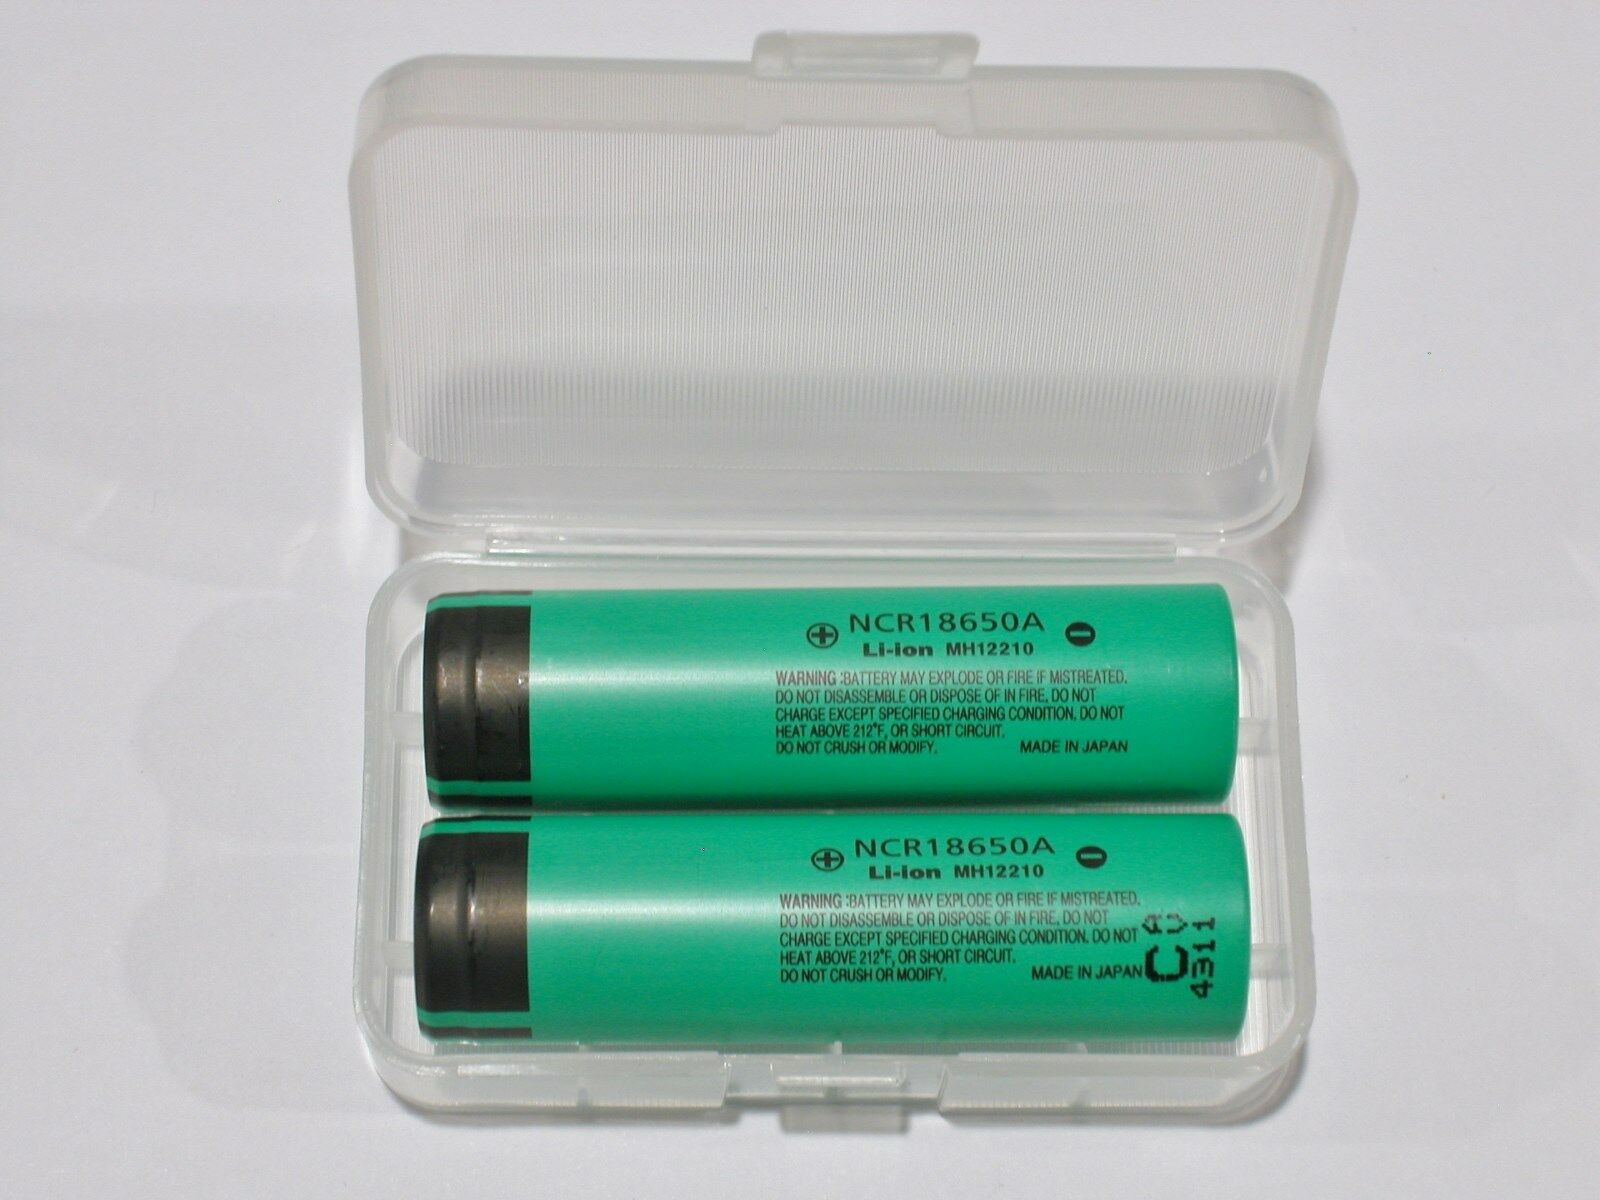 2 Panasonic Ncr18650a Li Ion Battery 3100mah 37v 18650 New Japan 2400mah Rechargeable Liion Batteries W Protection Circuit 1 Of 3free Shipping